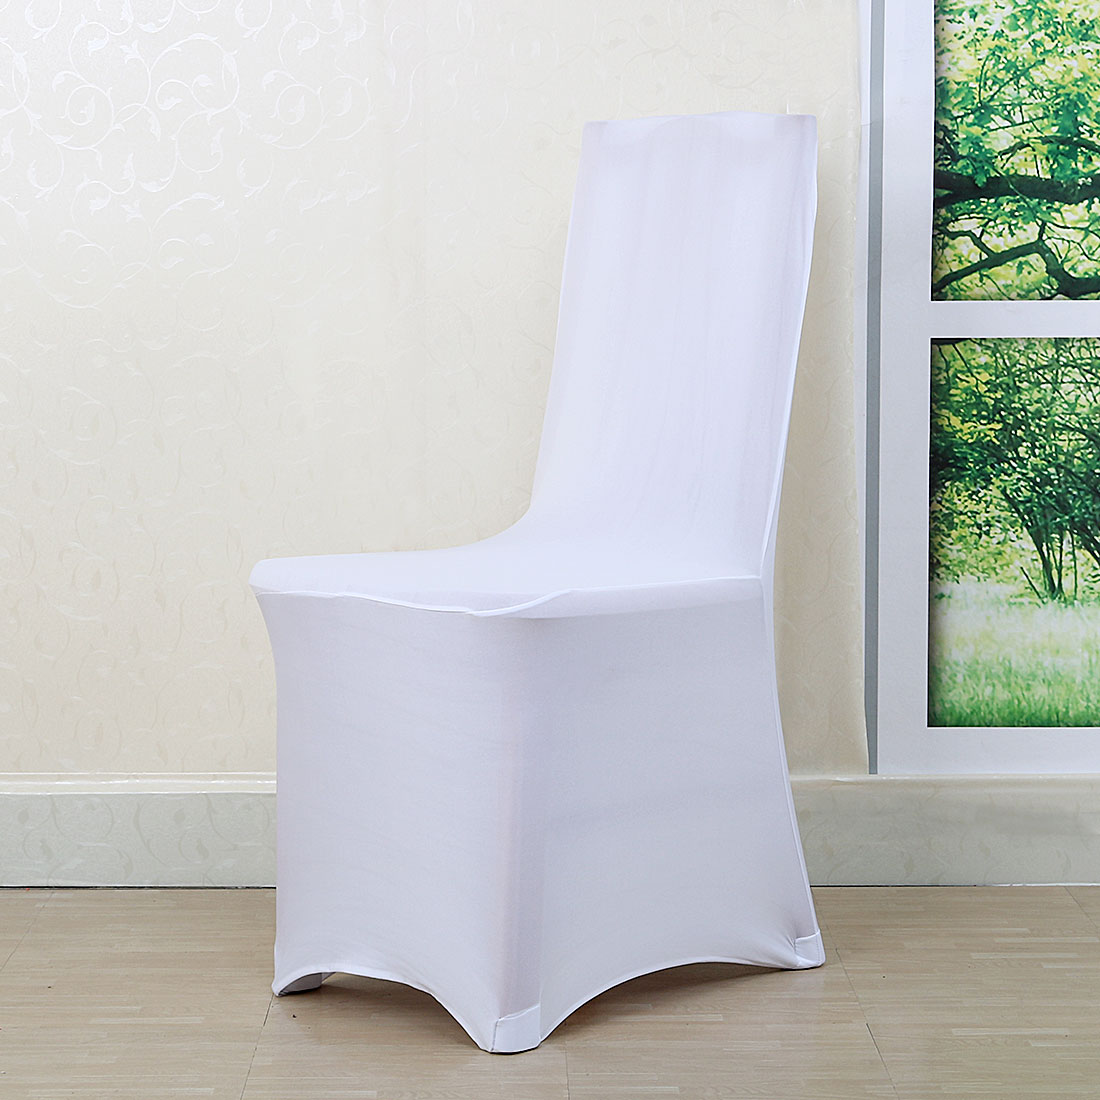 Stretch Dining Chair Covers Universal Slipcover for Hotel Wedding Party Decor White